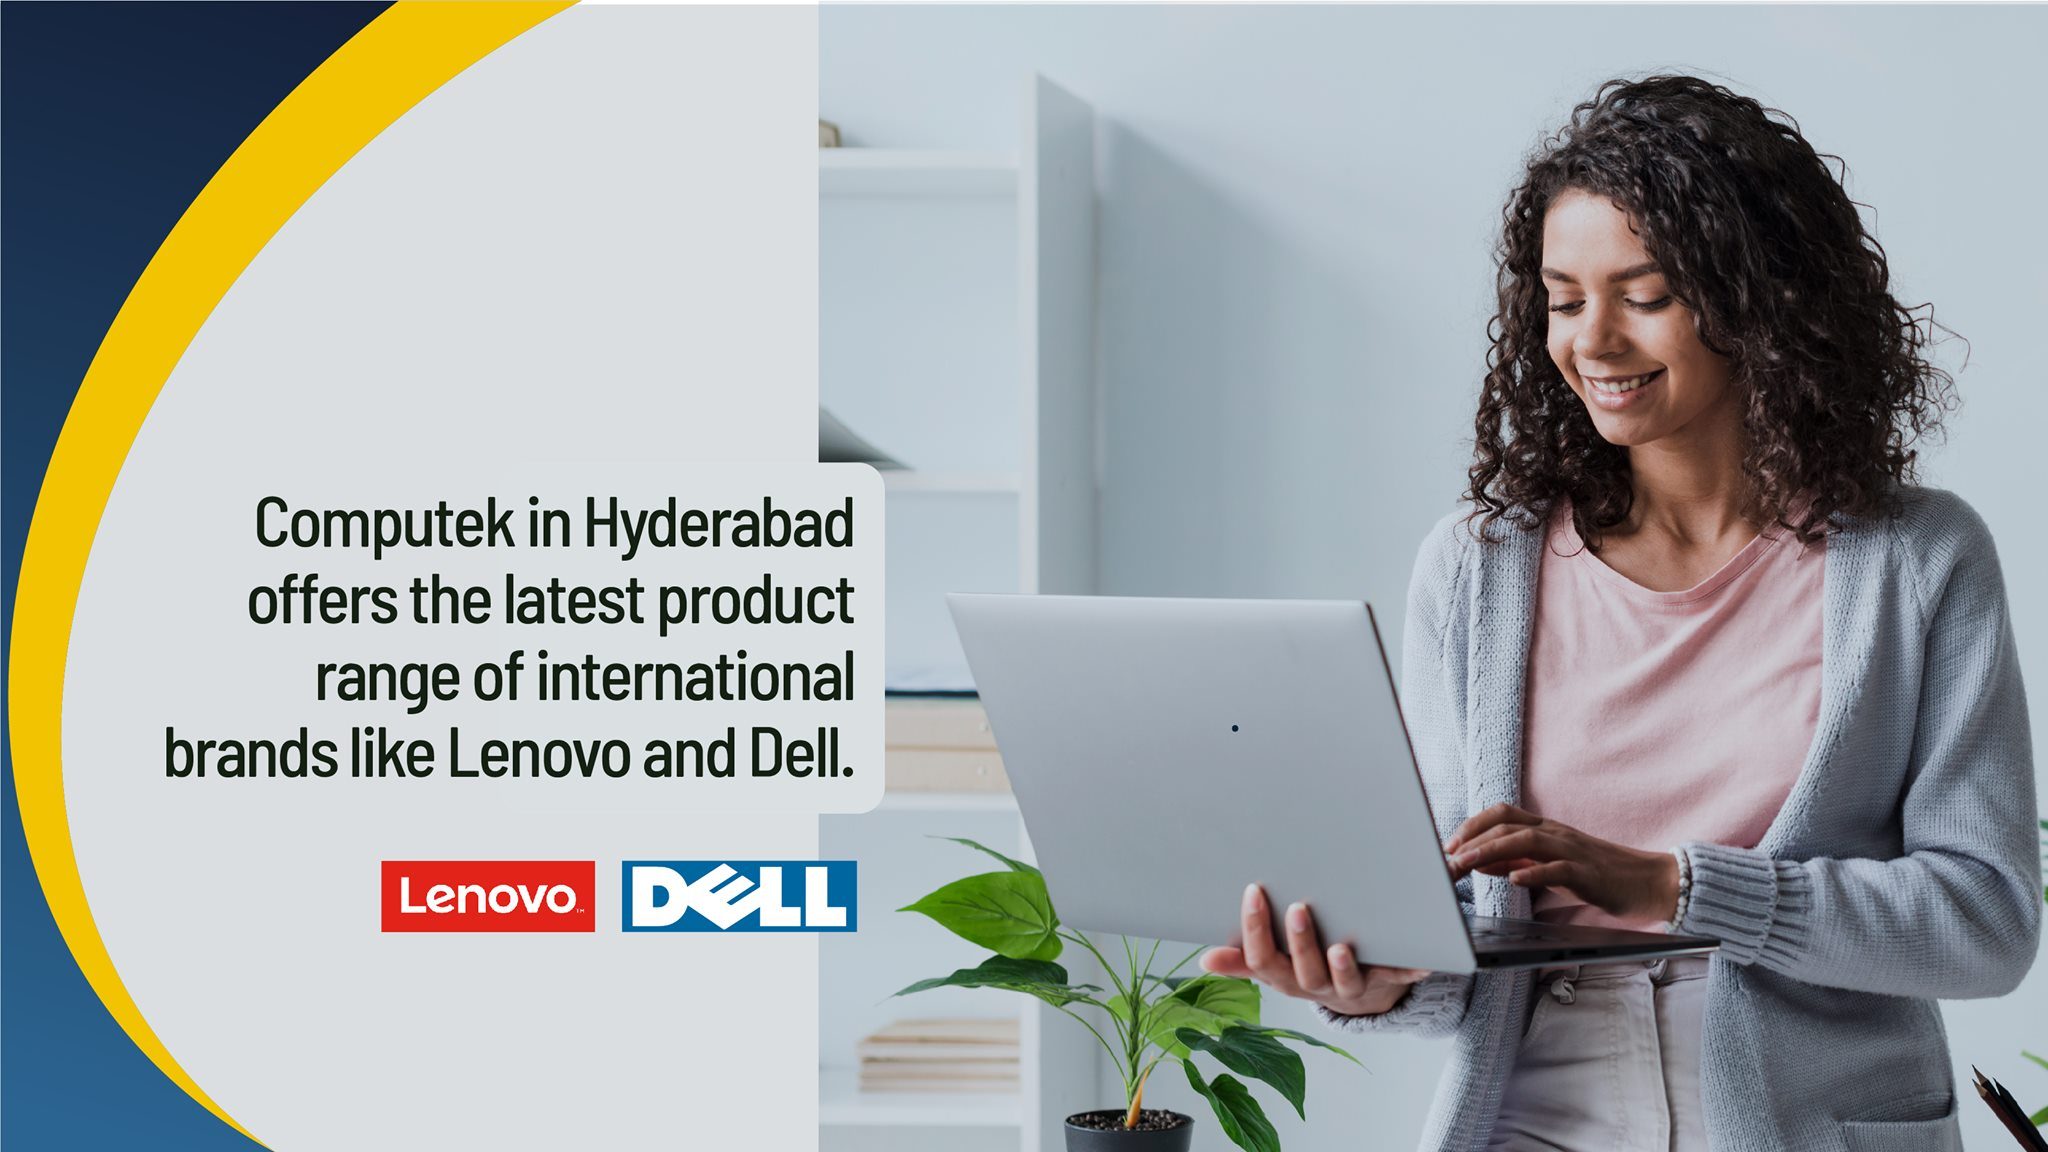 Computek in Hyderabad offers the latest product range of international brands like Lenovo and Dell